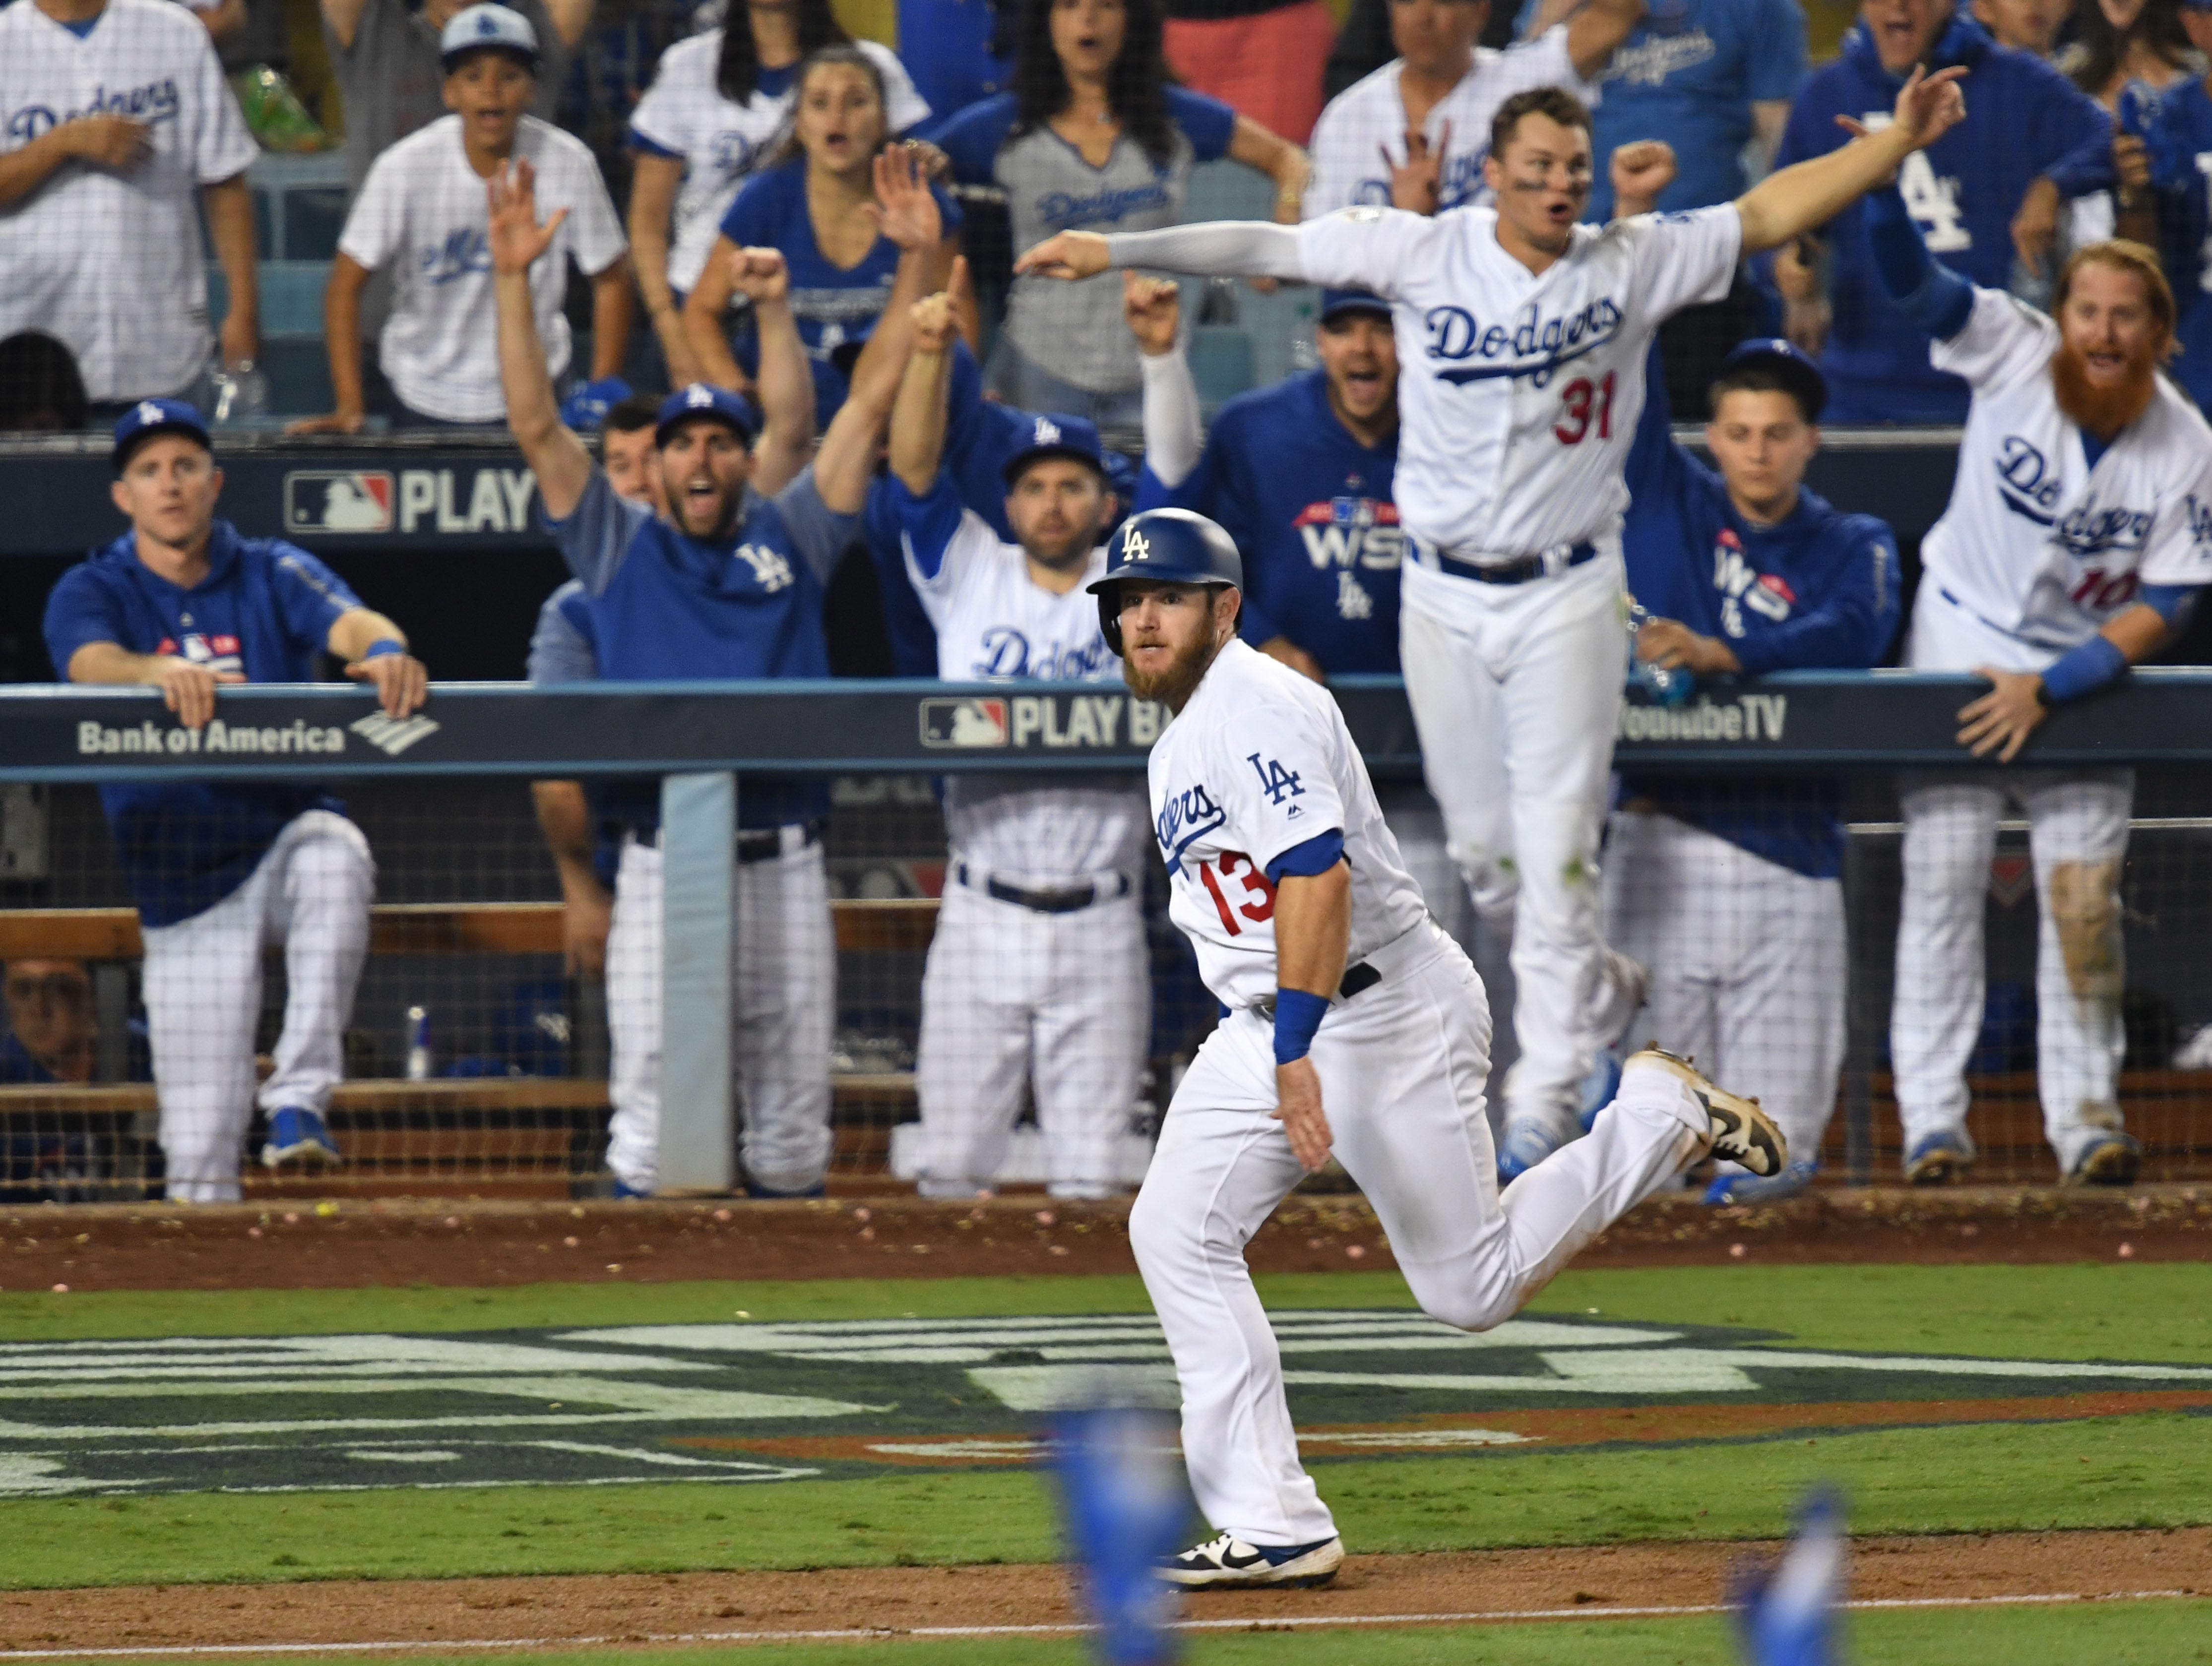 Game 3 at Dodger Stadium: Max Muncy scores the tying run in the bottom of the 13th.